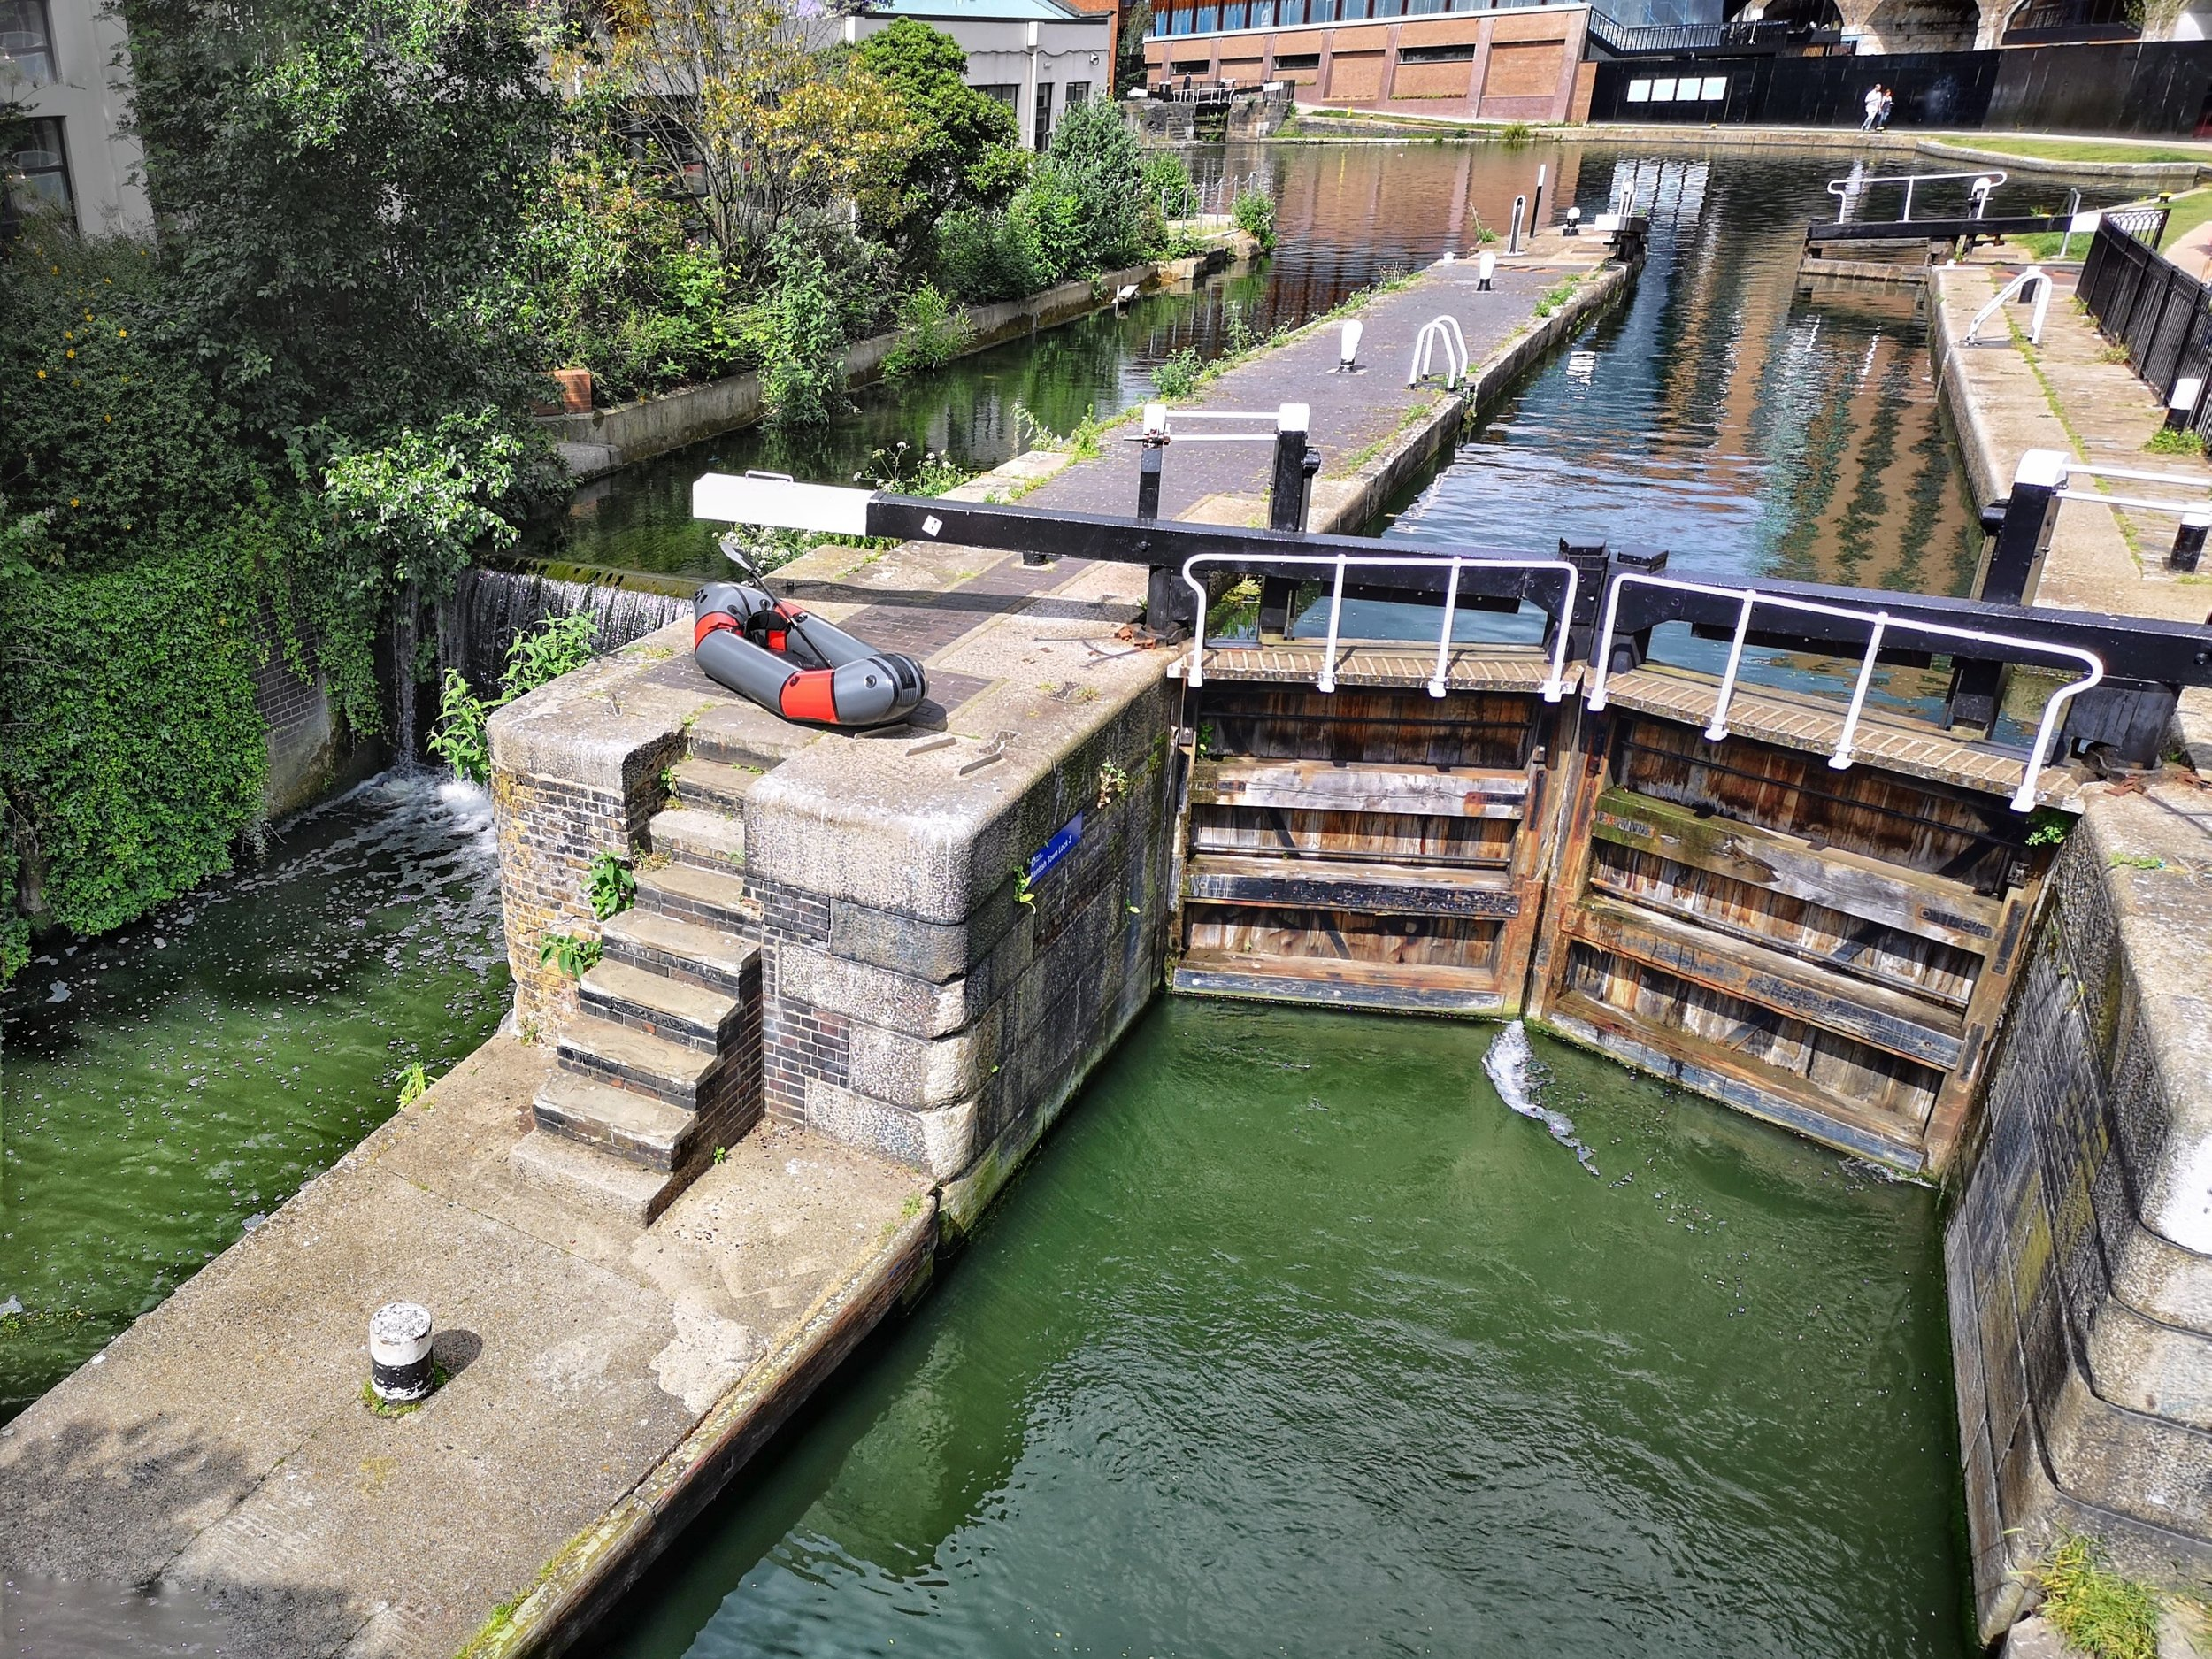 Camden has three locks within a couple of hundred meters. Kentish Town lock is the lowest and the perfect place to start your paddle. It's only minutes away from Camden Town Tube Station.